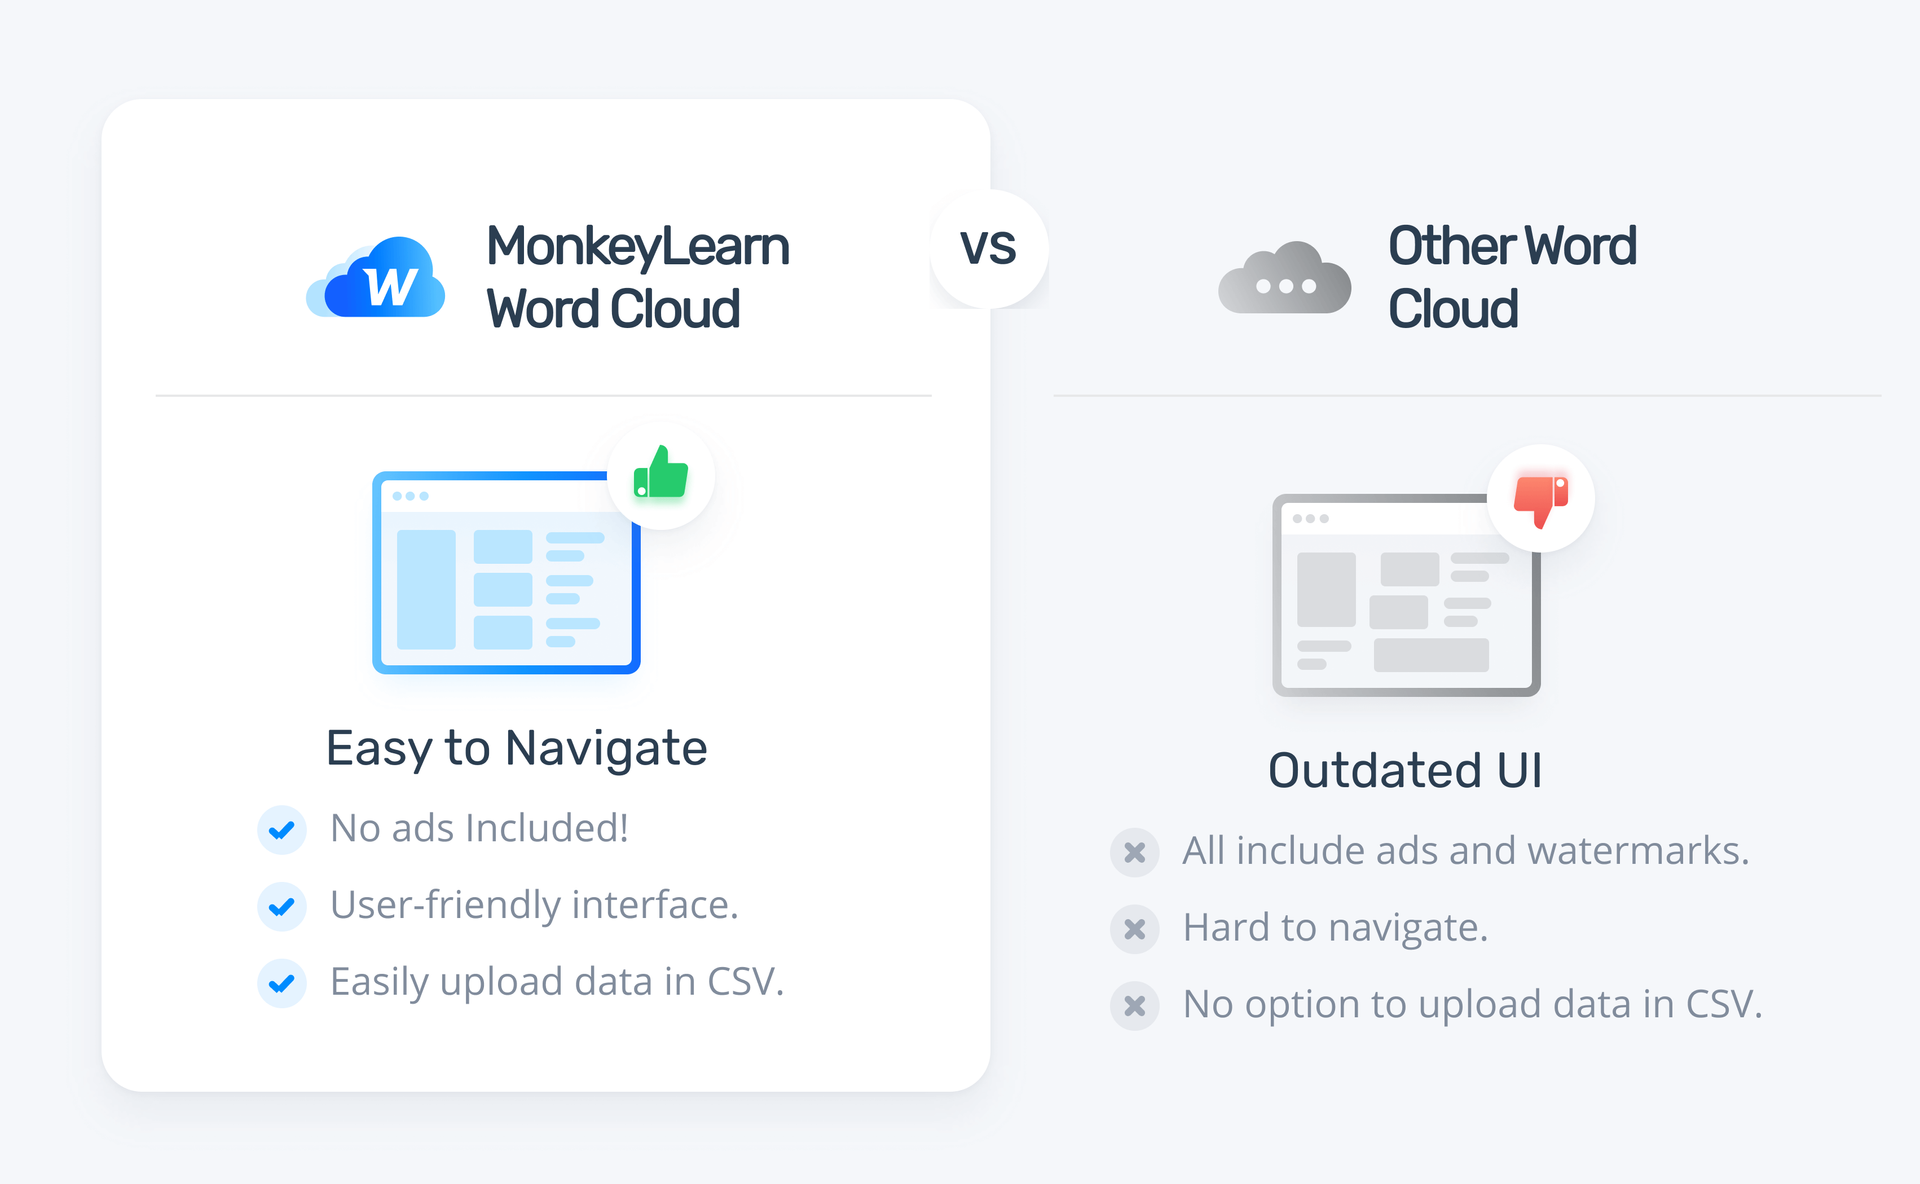 MonkeyLearn's easy navigation vs other word clouds that are hard to navigate